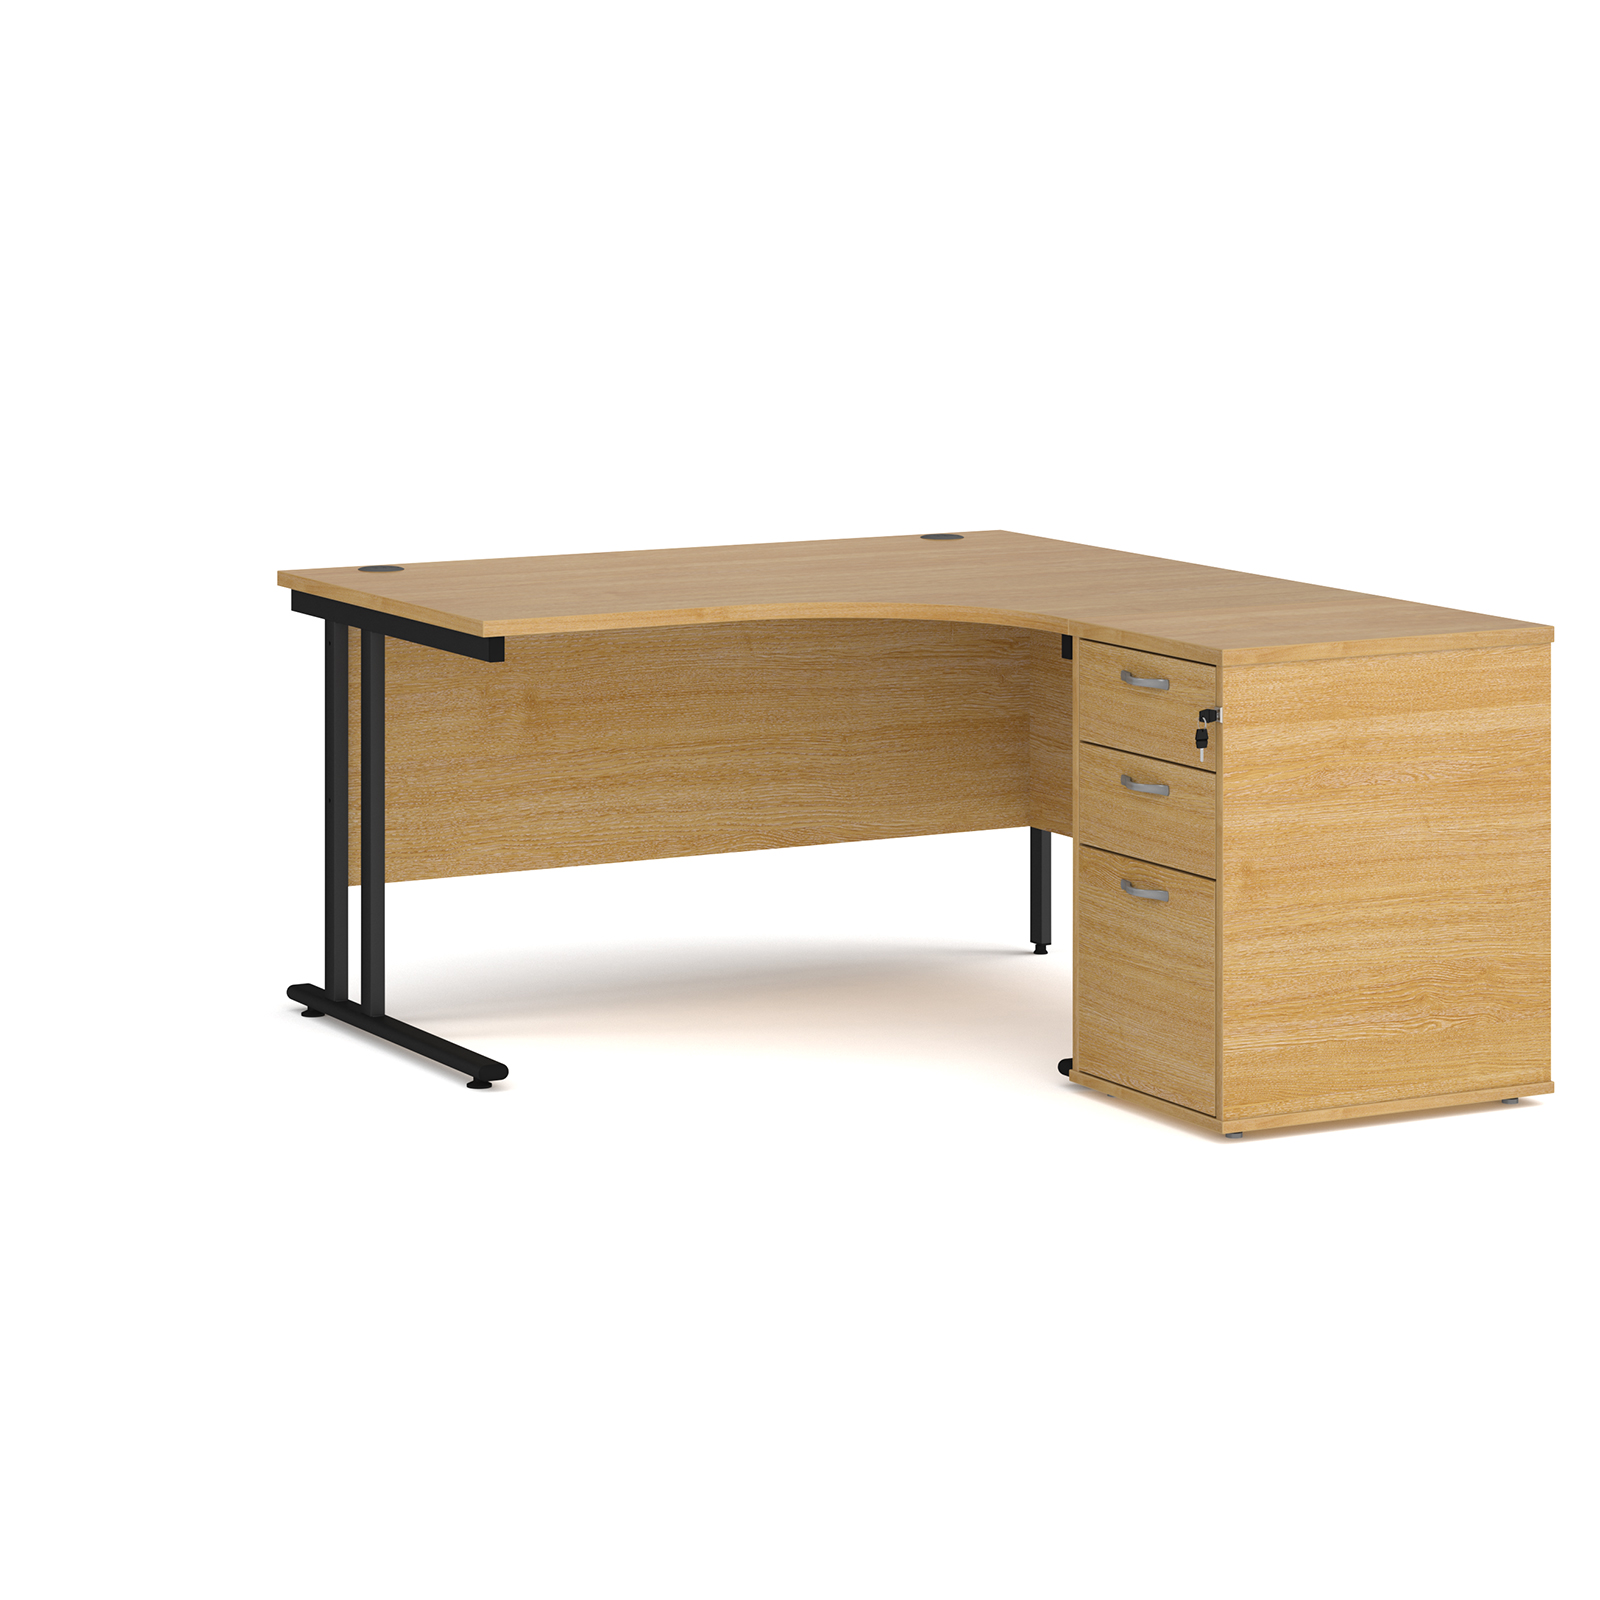 Right Handed Maestro 25 right hand ergonomic desk 1400mm with black cantilever frame and desk high pedestal - oak